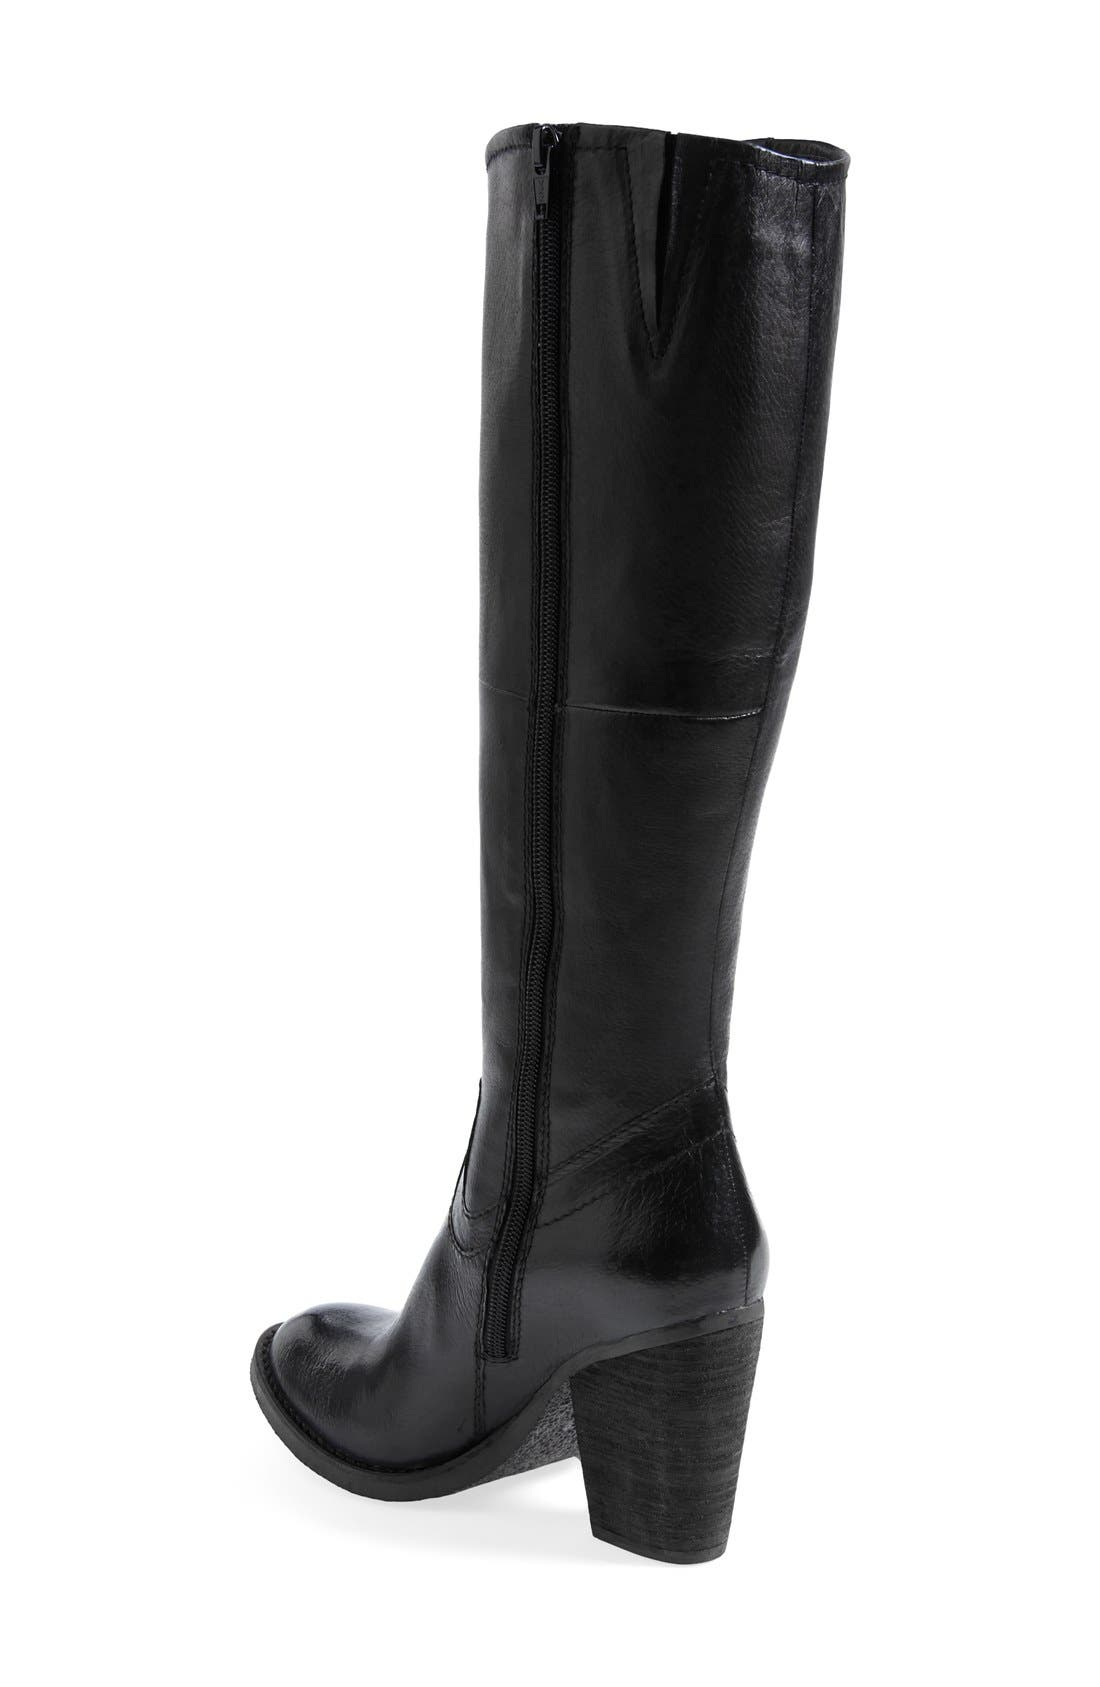 'Carrter' Knee High Leather Boot,                             Alternate thumbnail 2, color,                             001